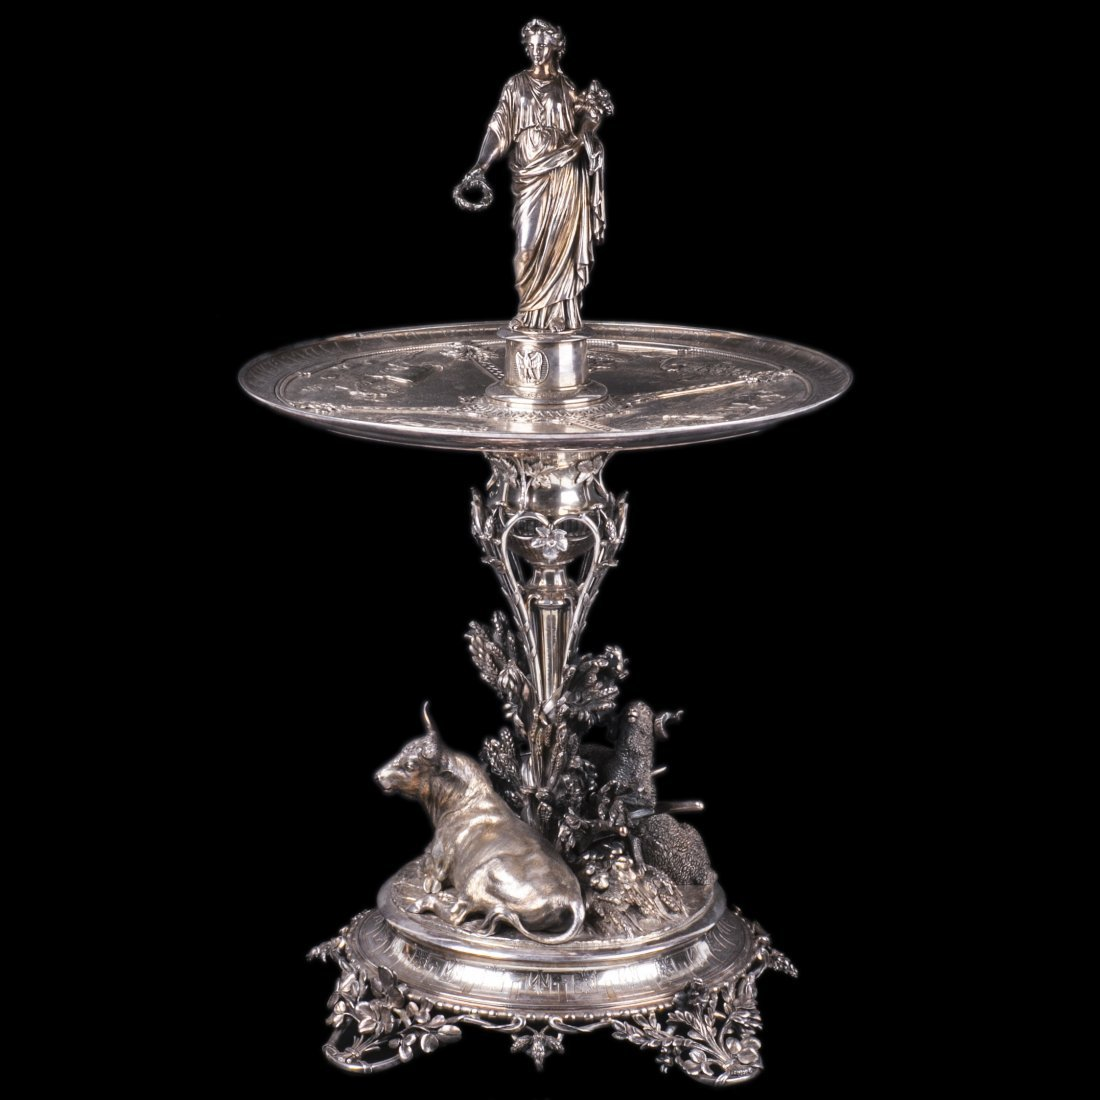 French silver figural Centerpiece